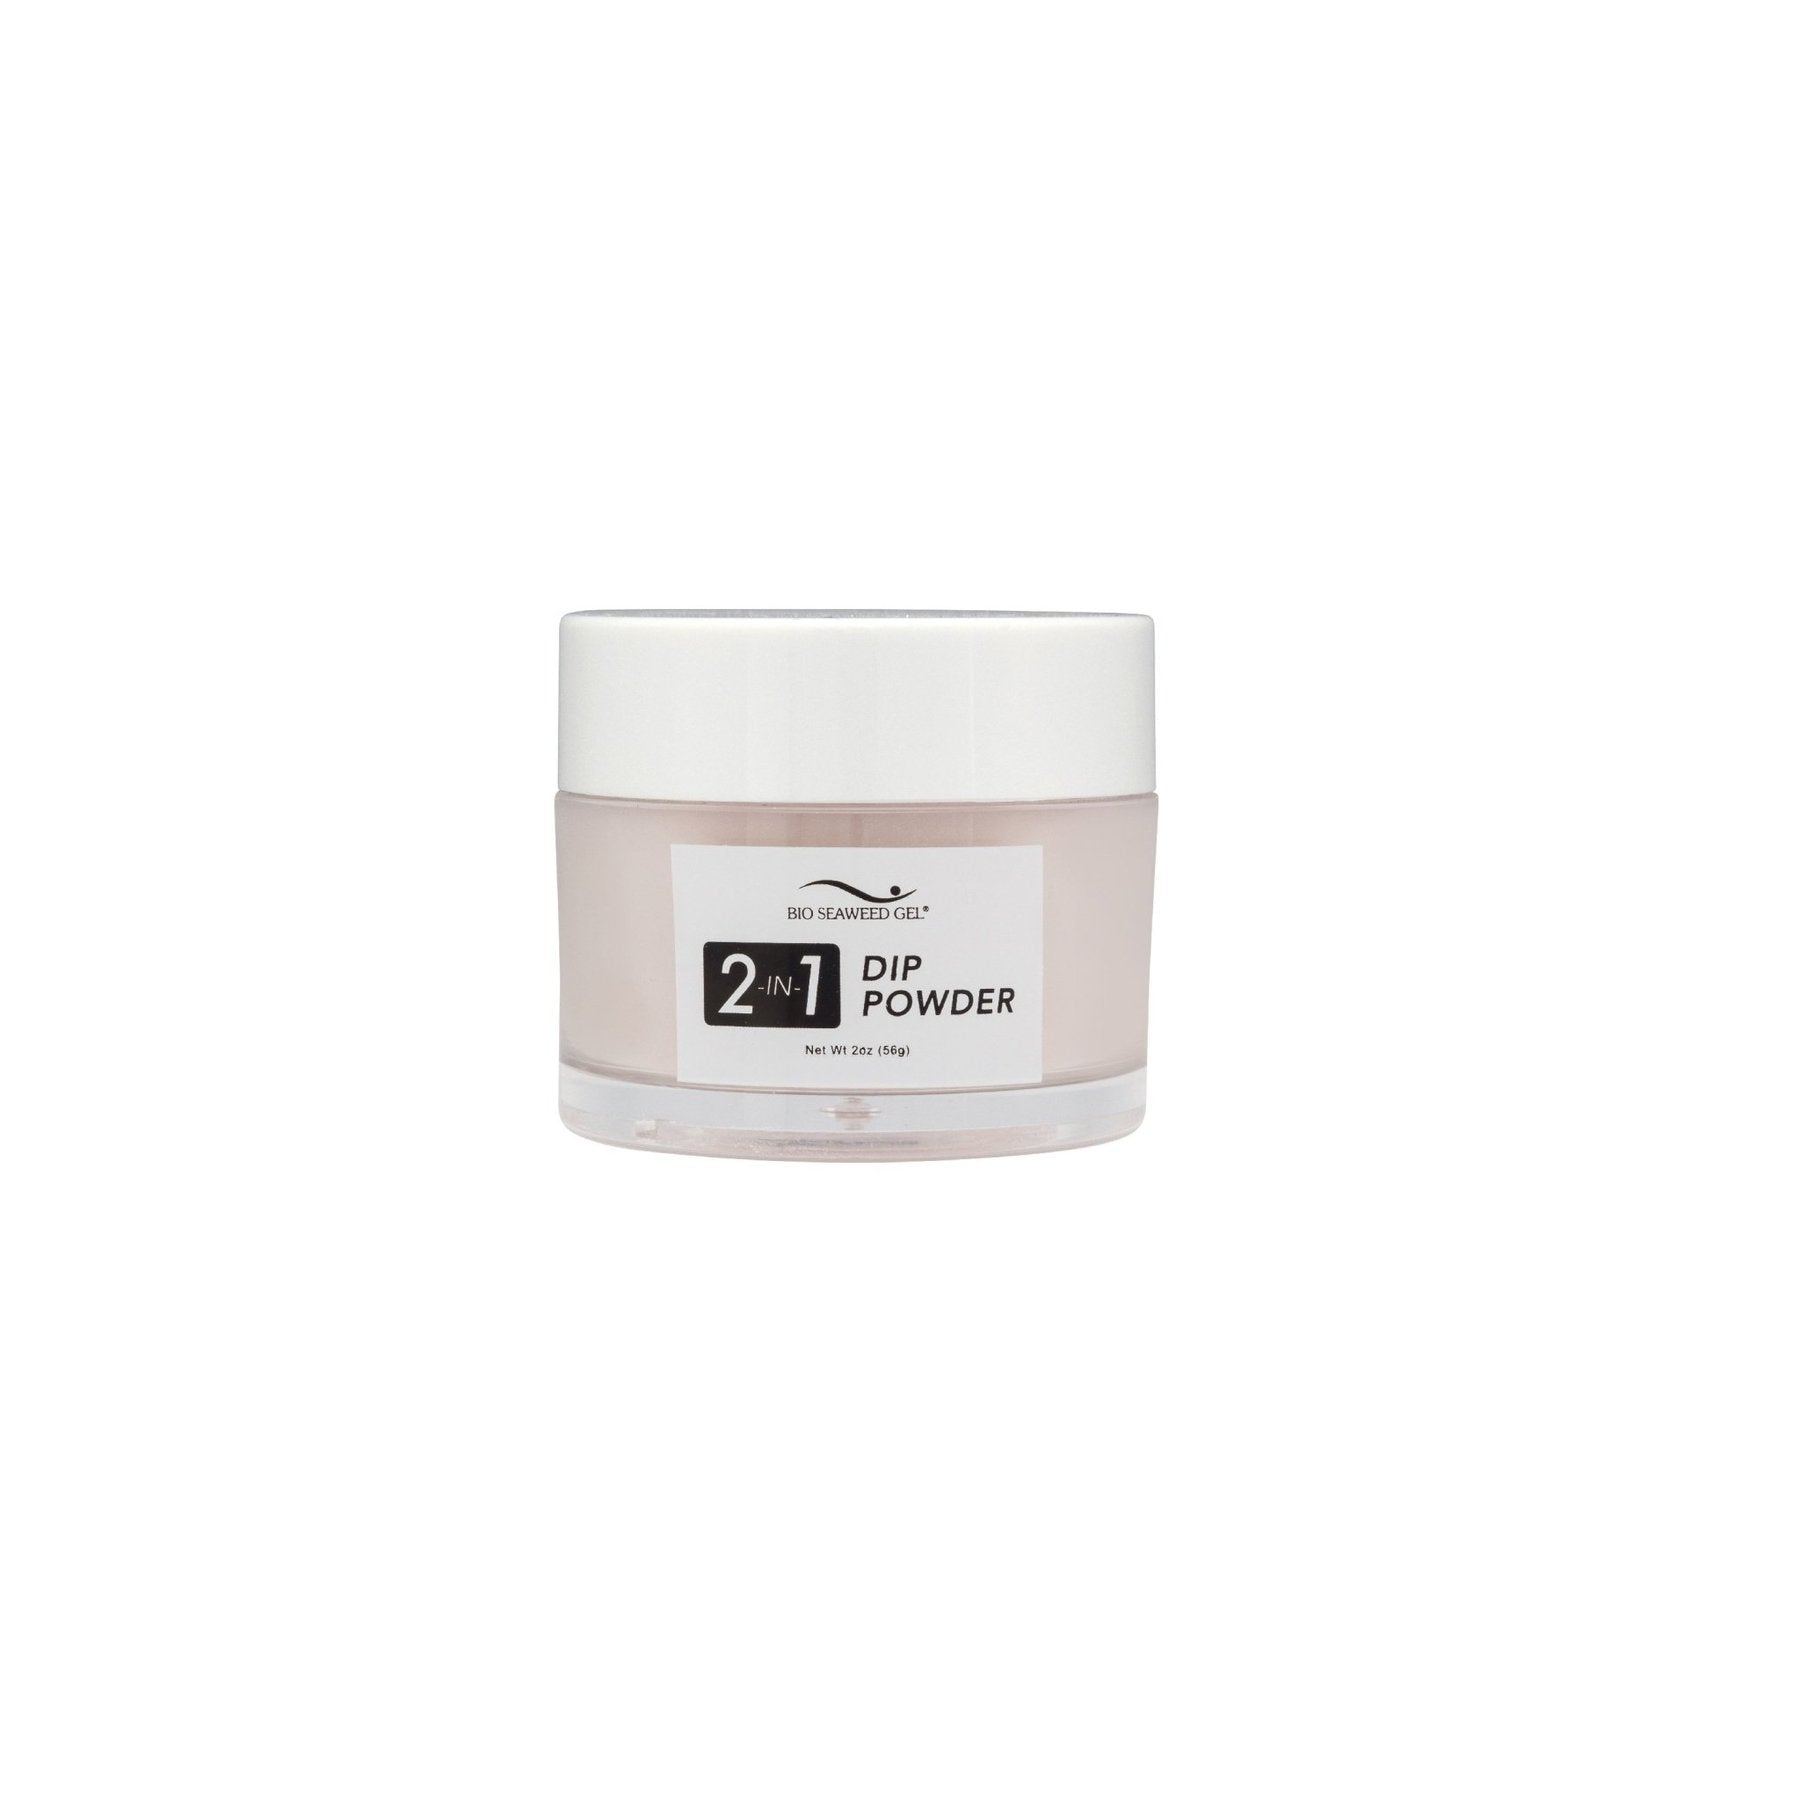 54 CREME | Bio Seaweed Gel® Dip Powder System - CM Nails & Beauty Supply